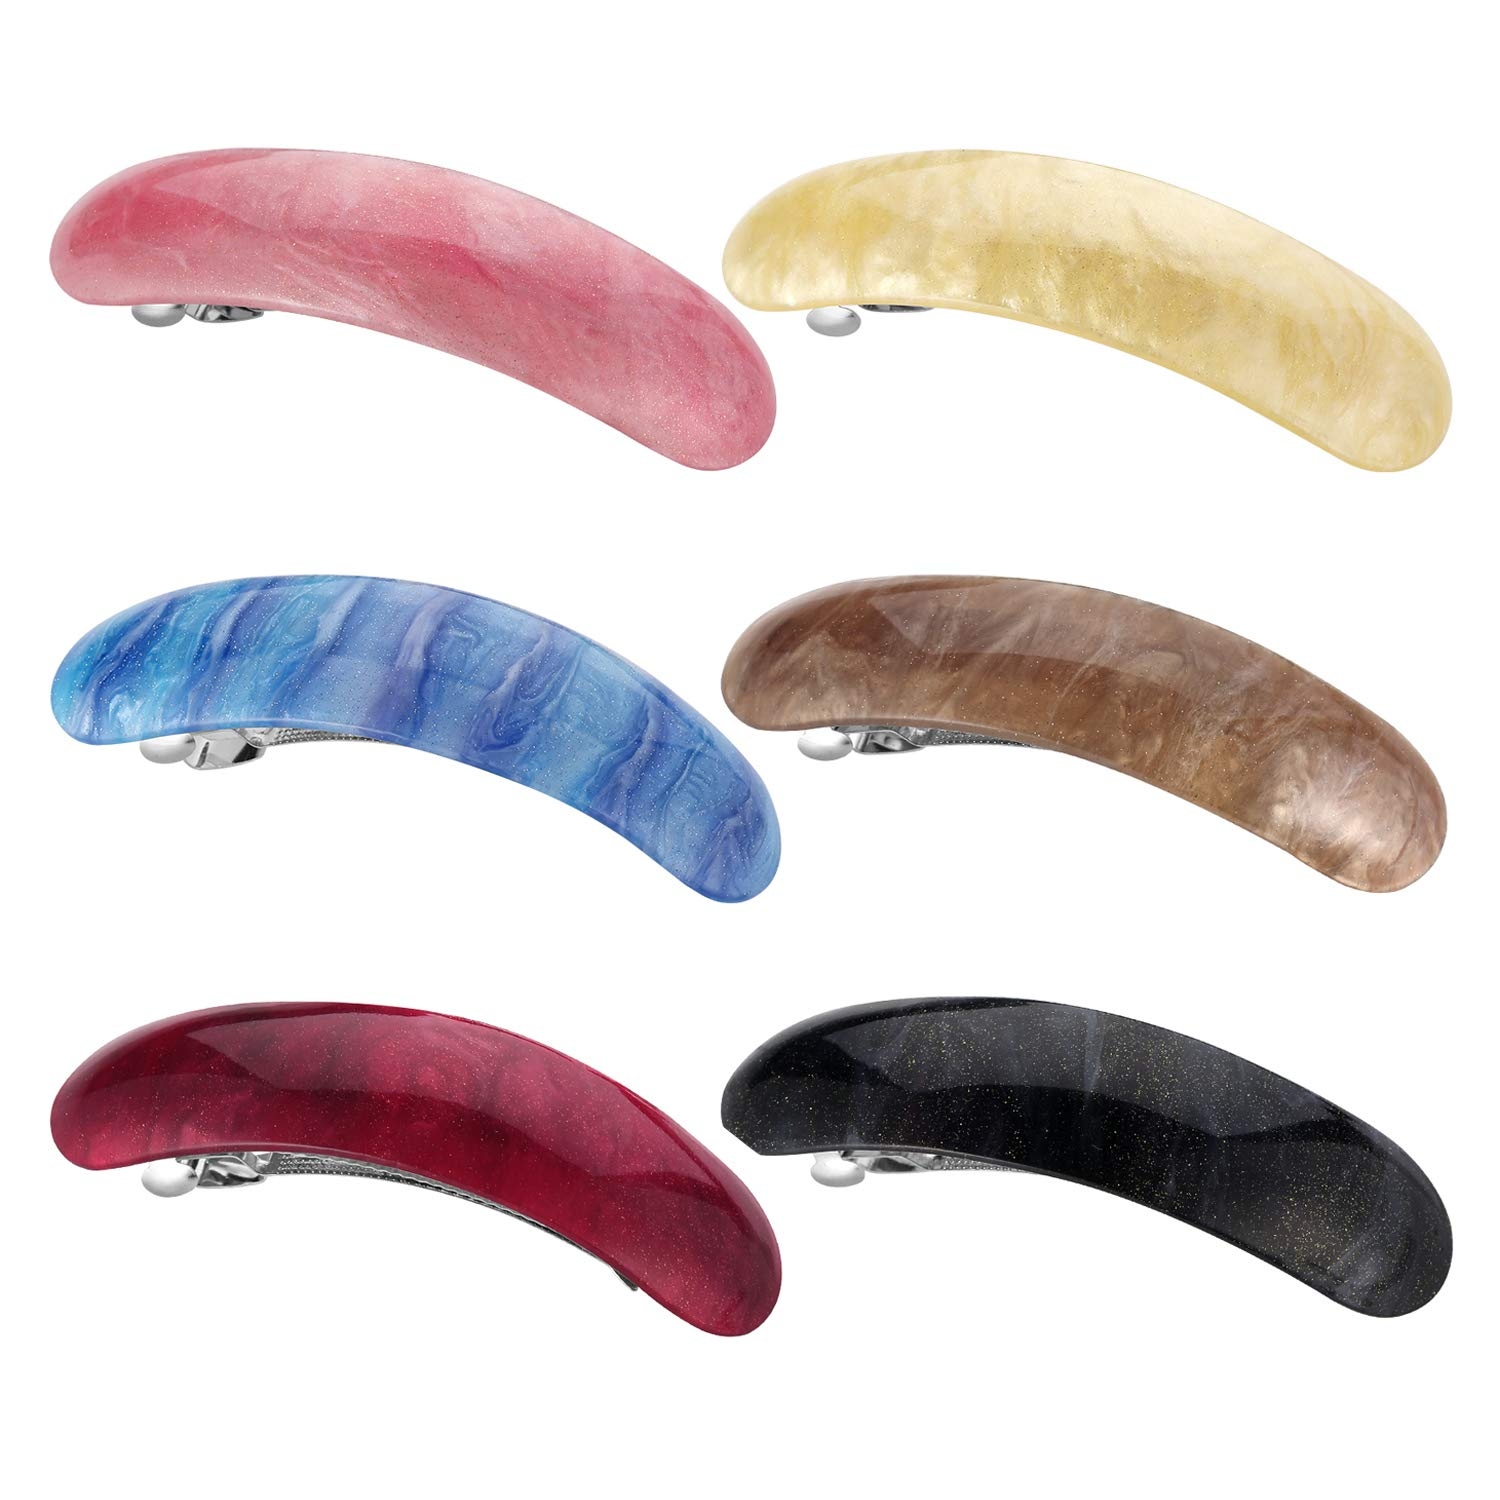 Hair Barrettes for Women Ladies, Funtopia 6 Pack 3.7 Inches Simple Retro Automatic Hair Clip for Medium and Thick Hair, Classic Hair Holders Barrettes for Daily Wearing